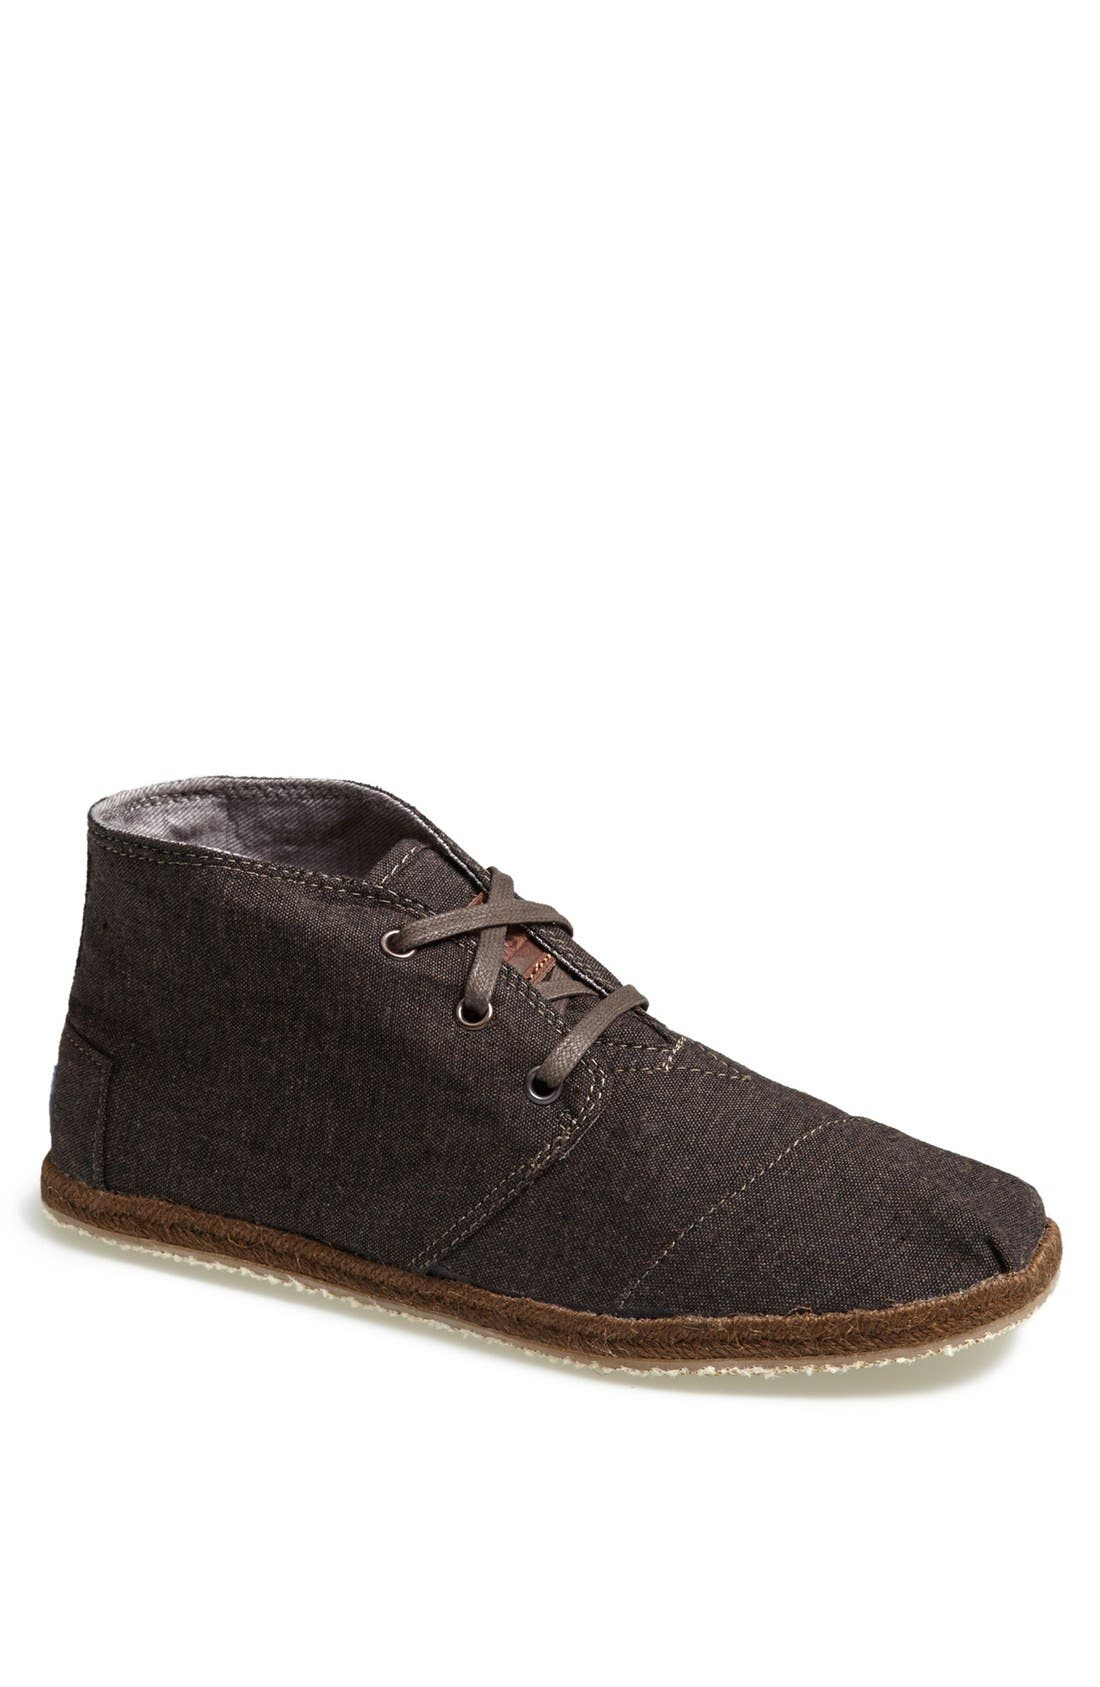 Alternate Image 1 Selected - TOMS 'Botas - Desert' Denim Boot (Men)